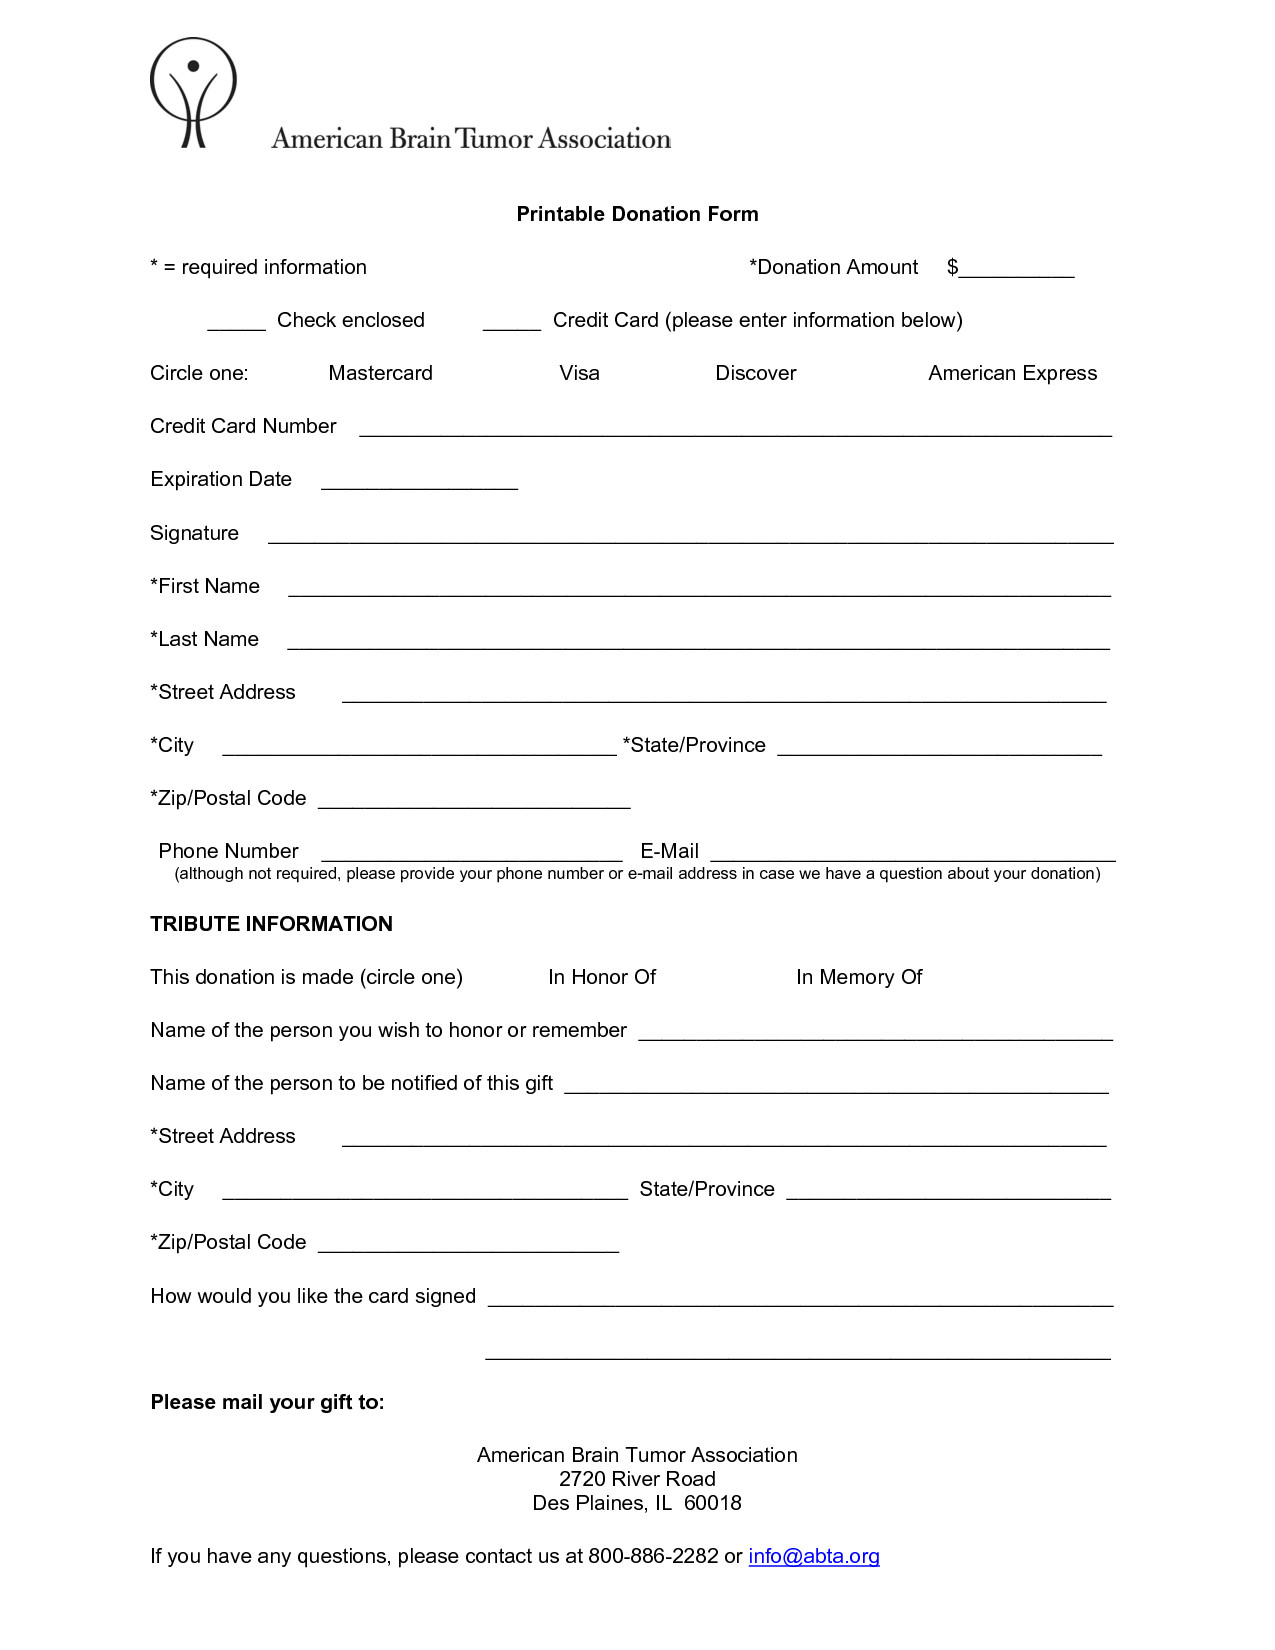 Printable Donation form Template 6 Free Donation form Templates Excel Pdf formats